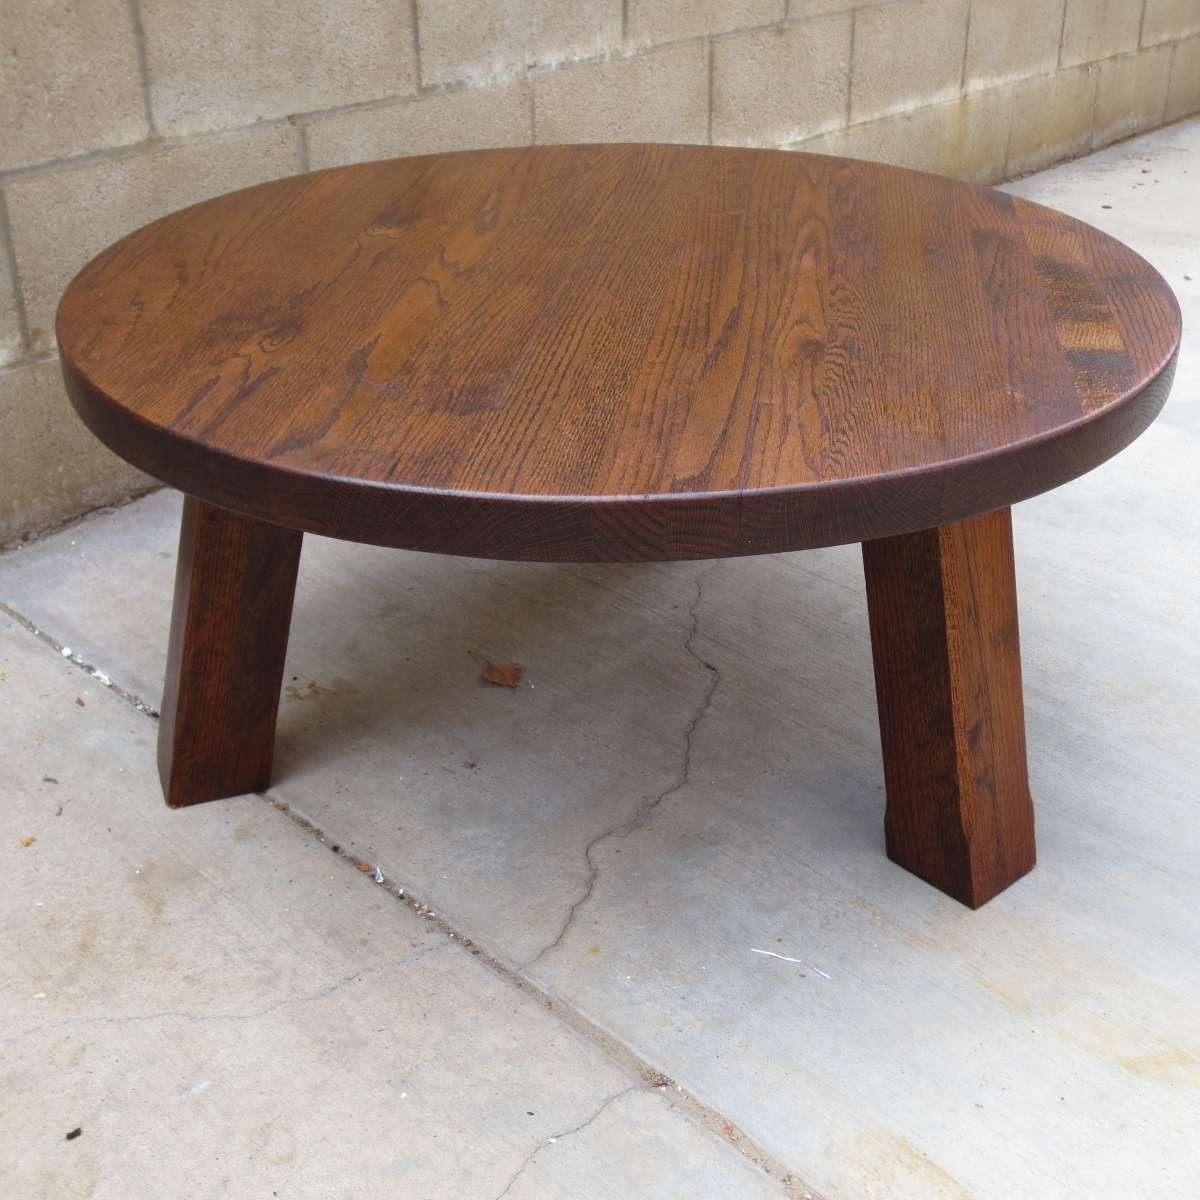 Coffee Table Small Round Oak Coffee Table Antique Tables Sale For Popular Round Oak Coffee Tables (View 16 of 20)